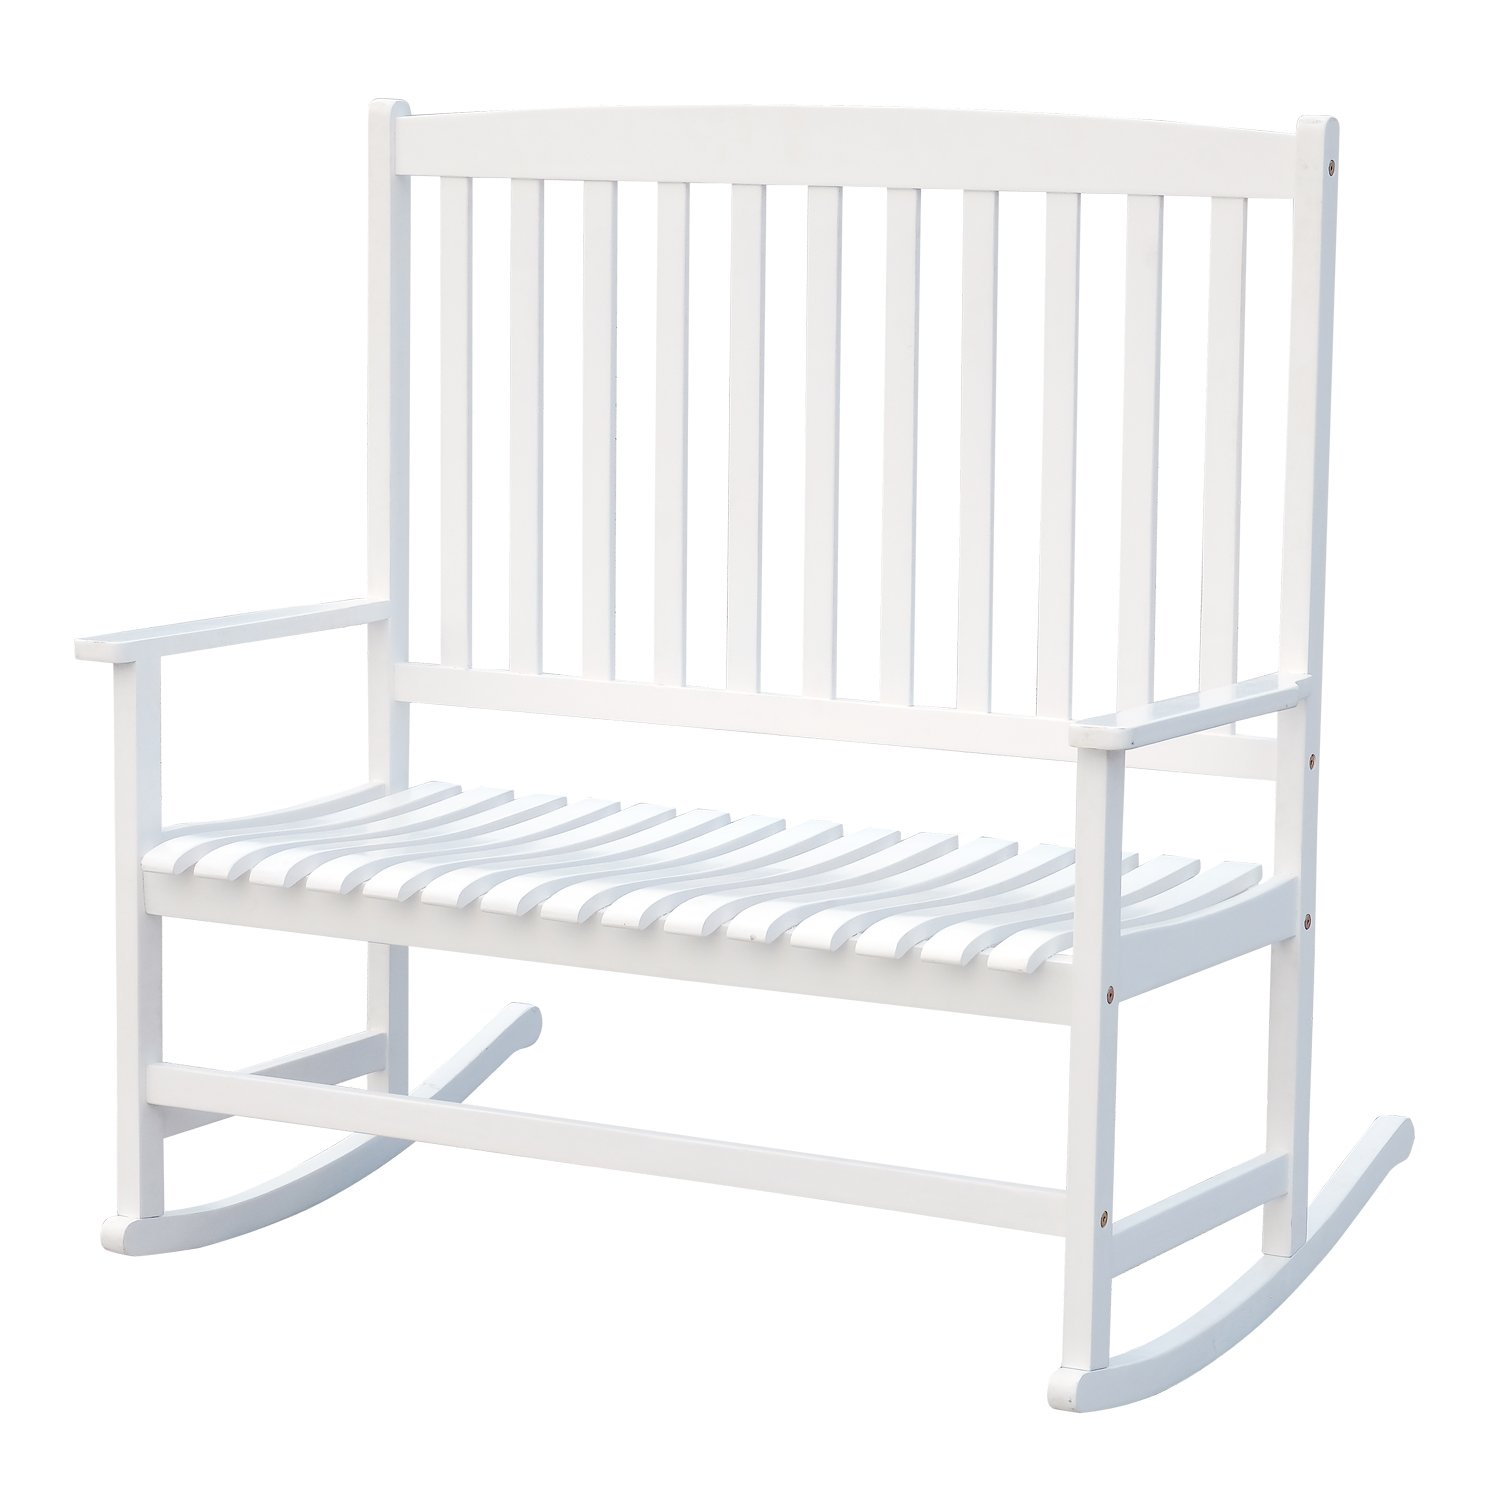 Outsunny 46'' 2-Person Acacia Wood Outdoor Porch Rocking Chair with Armrest - White by Outsunny